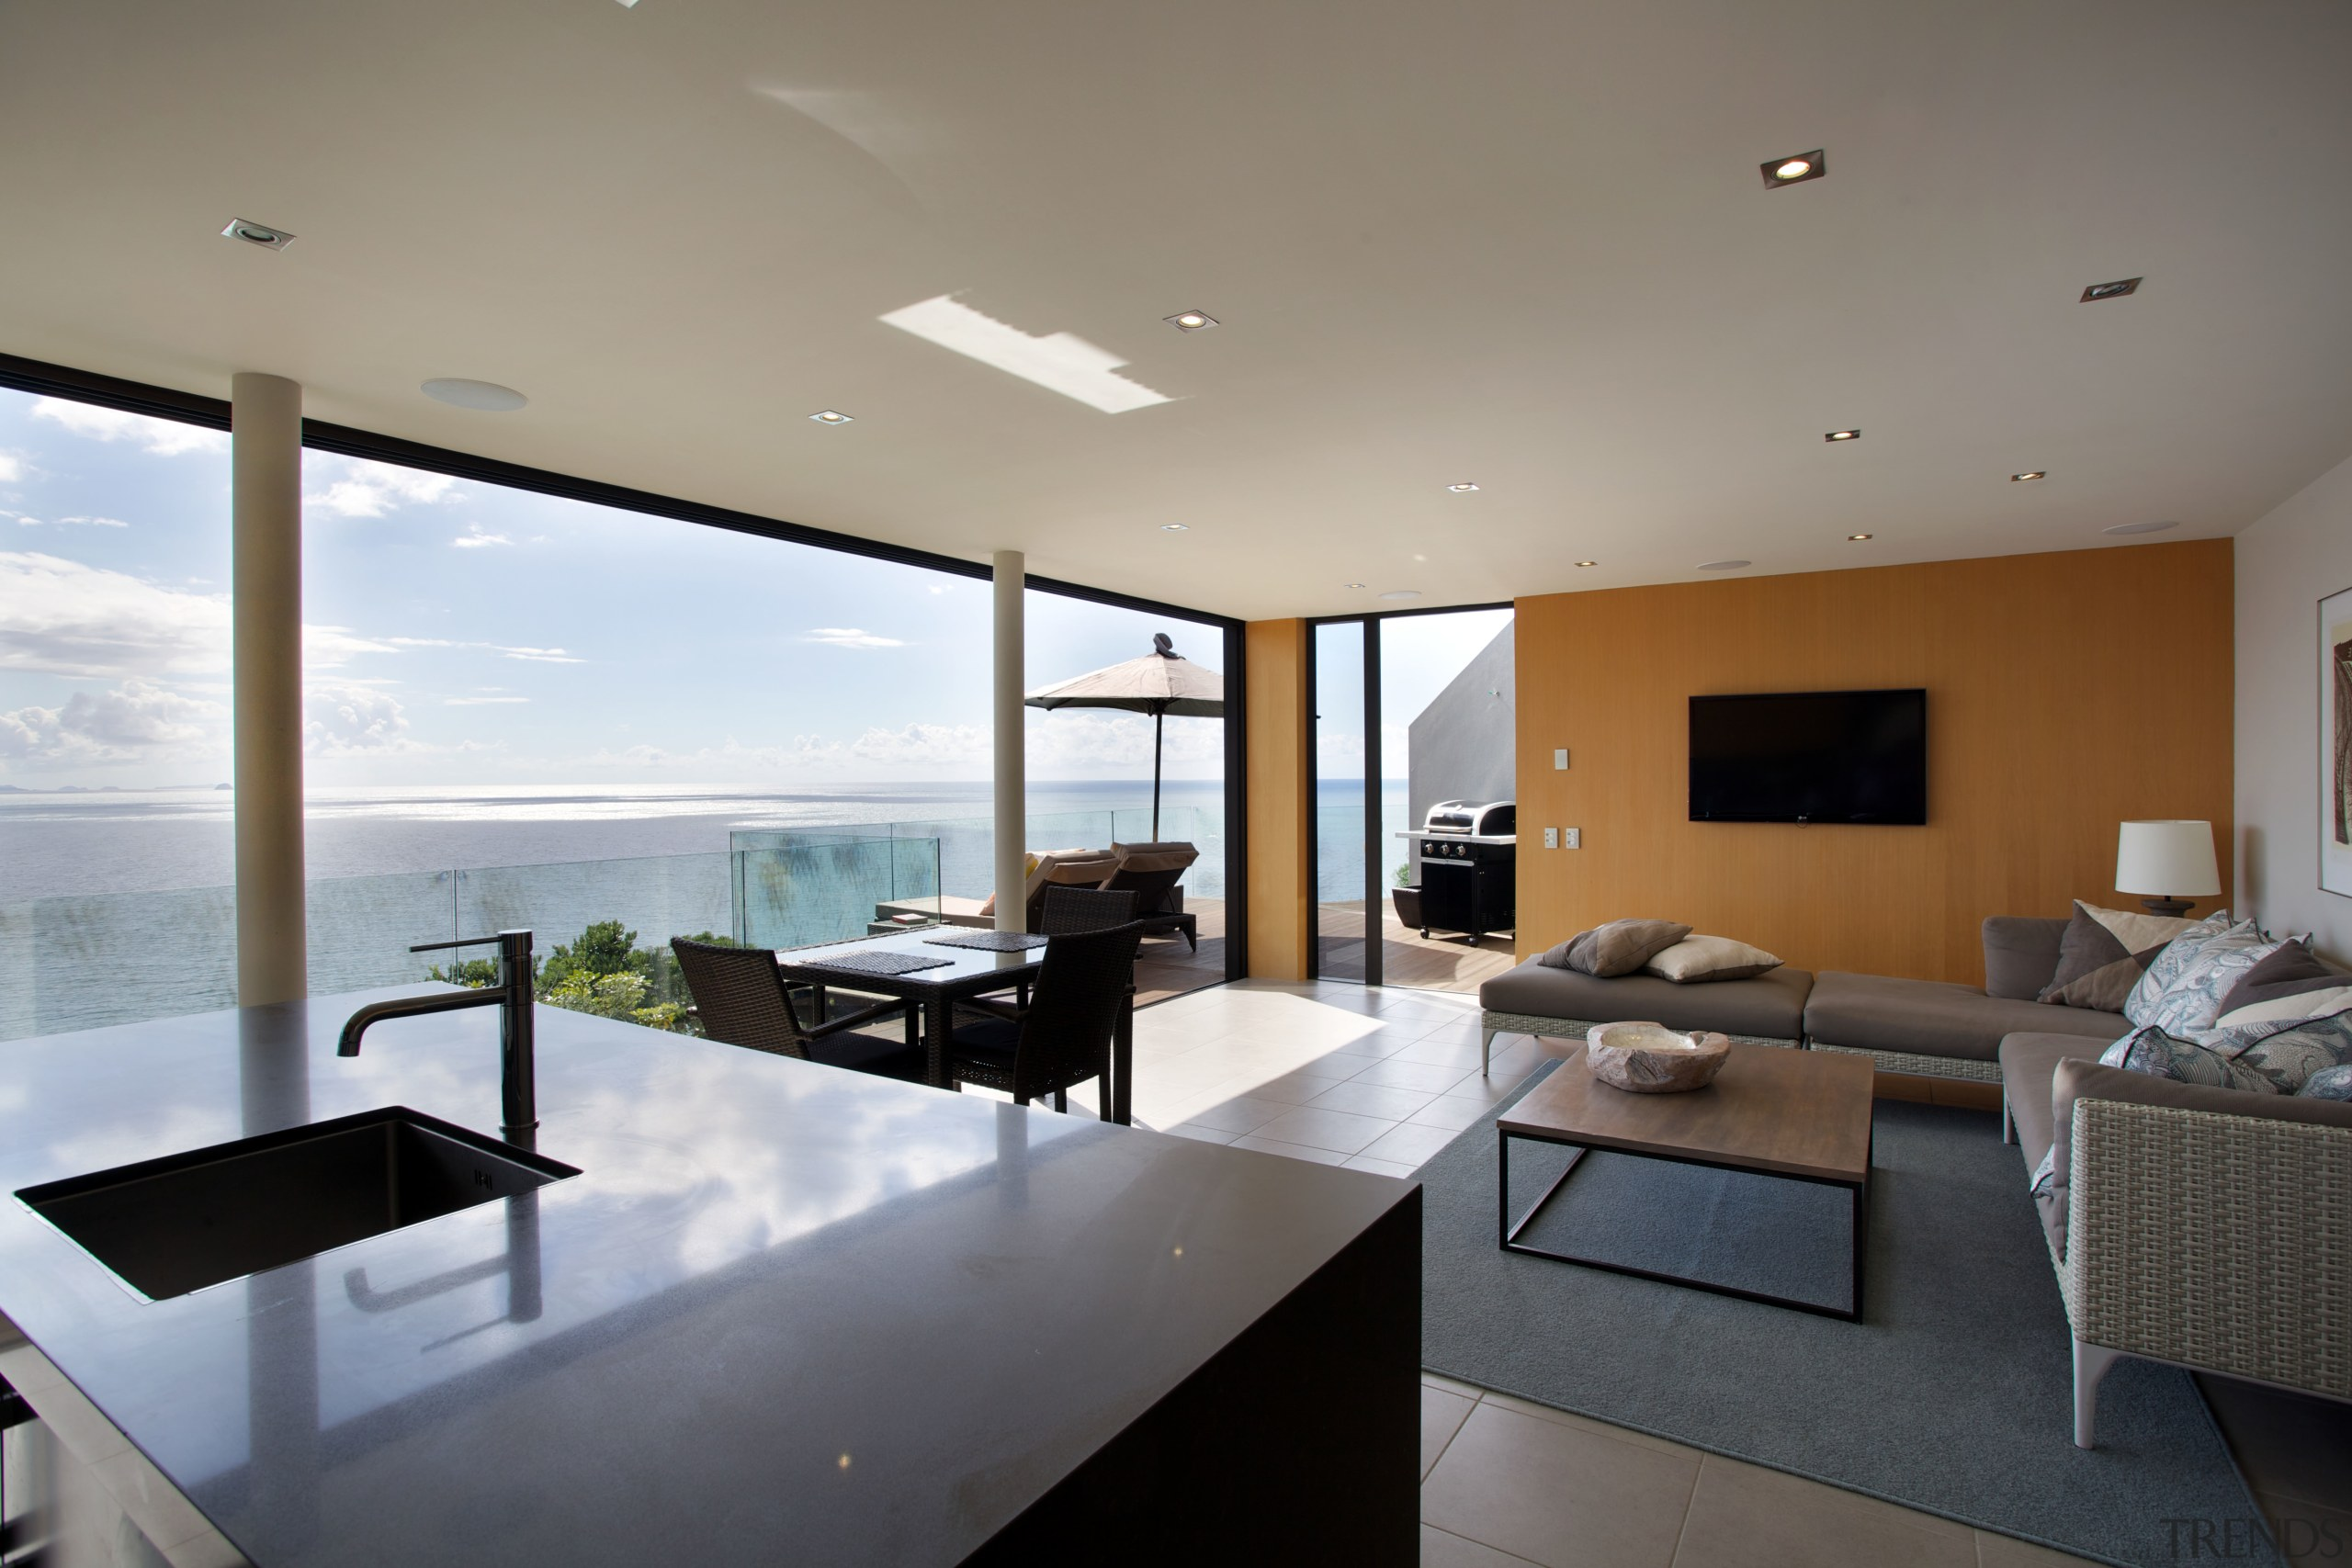 Left: The simplicity of the design is a apartment, architecture, house, interior design, living room, penthouse apartment, property, real estate, window, gray